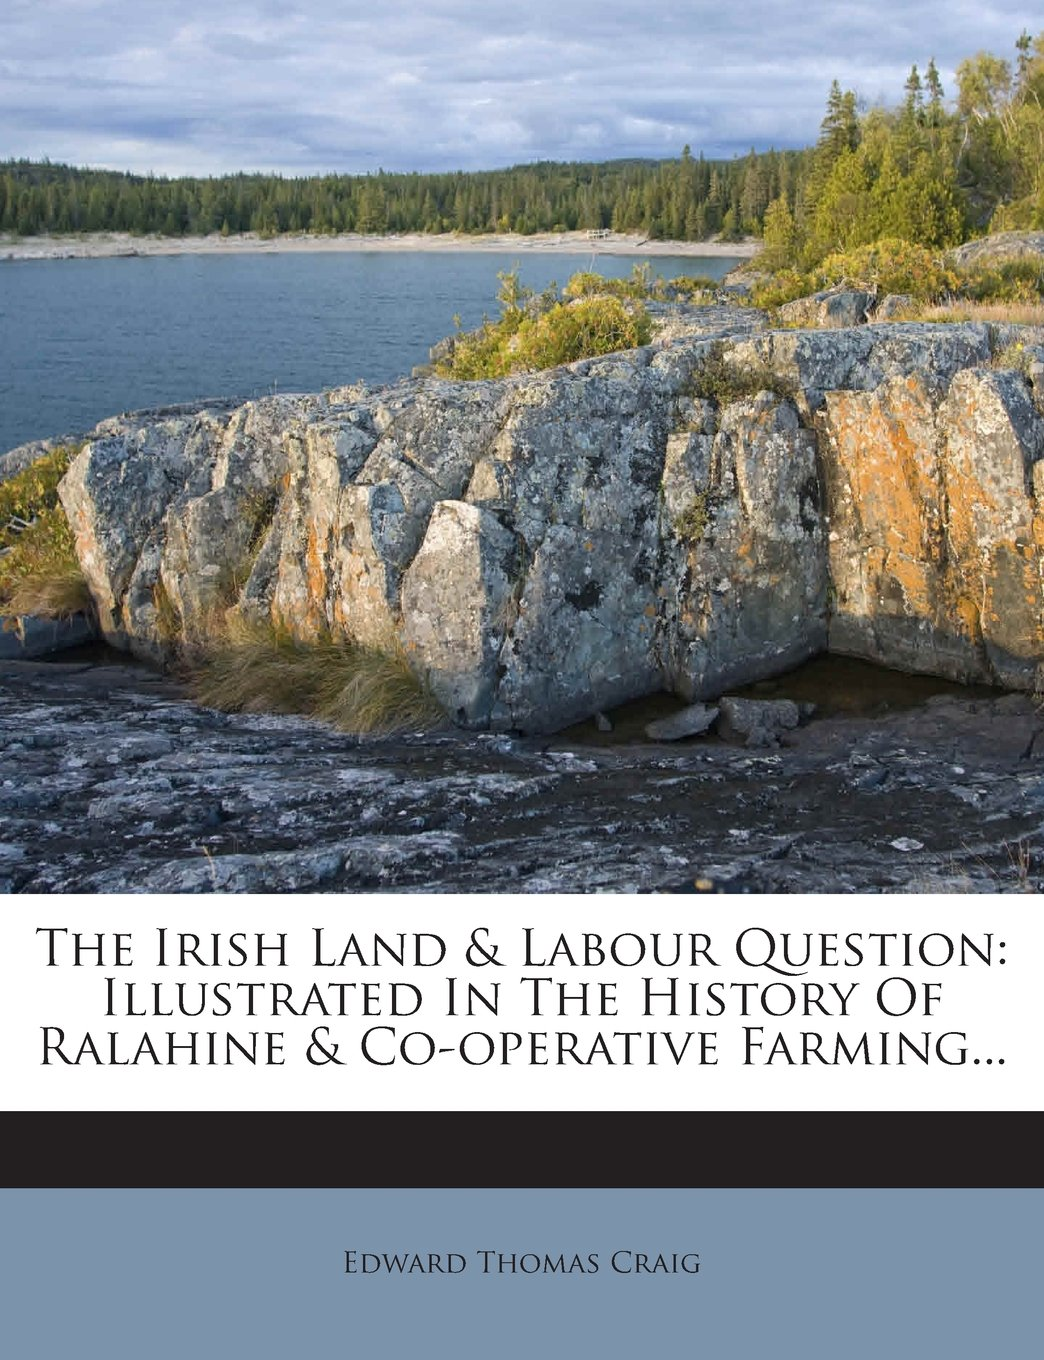 The Irish Land & Labour Question: Illustrated In The History Of Ralahine & Co-operative Farming... pdf